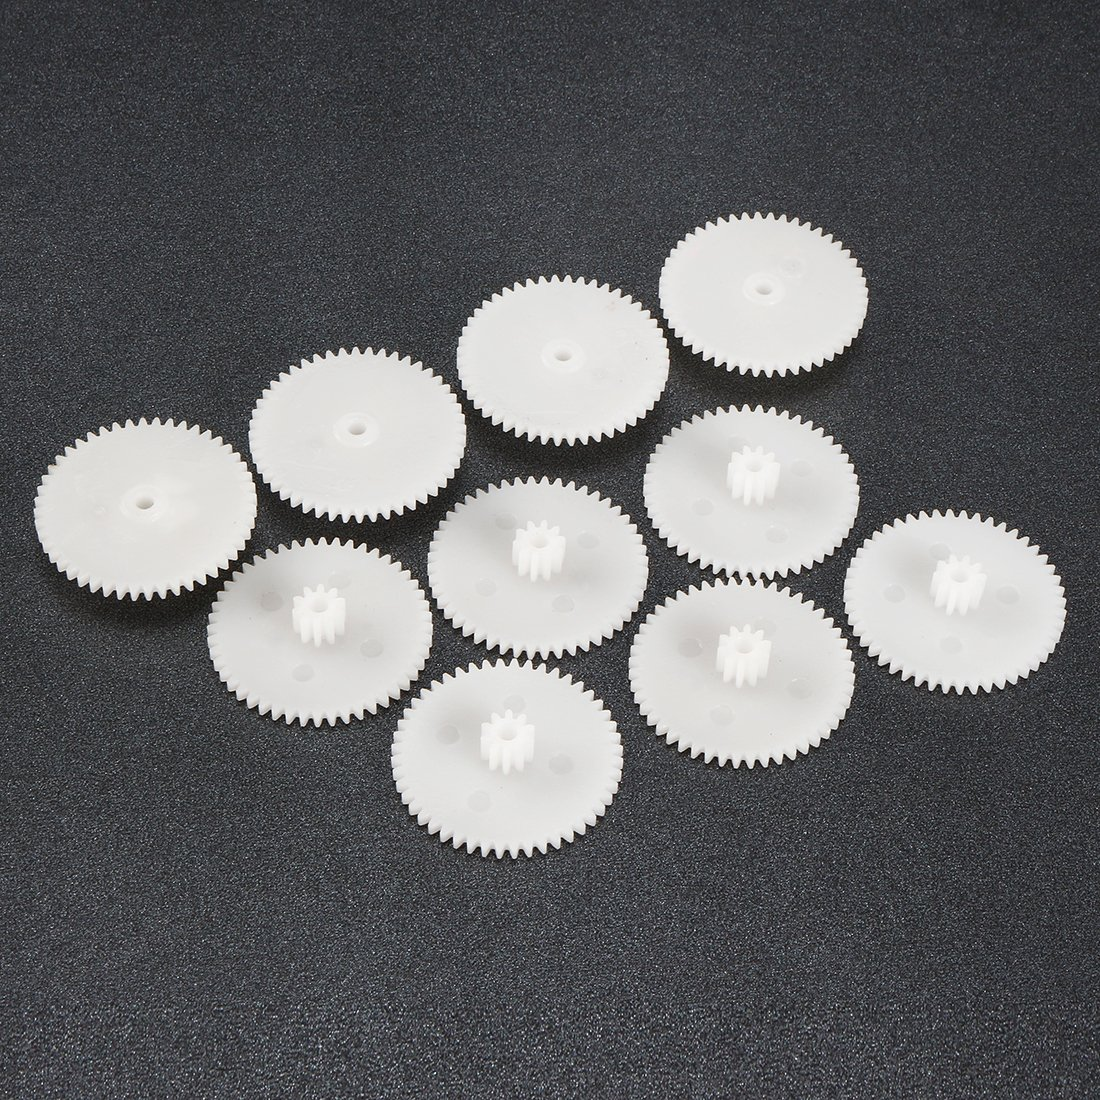 uxcell Plastic Gear DIY Reduction Worm Gears Model 48102B for RC Car Robot Motor 10pcs